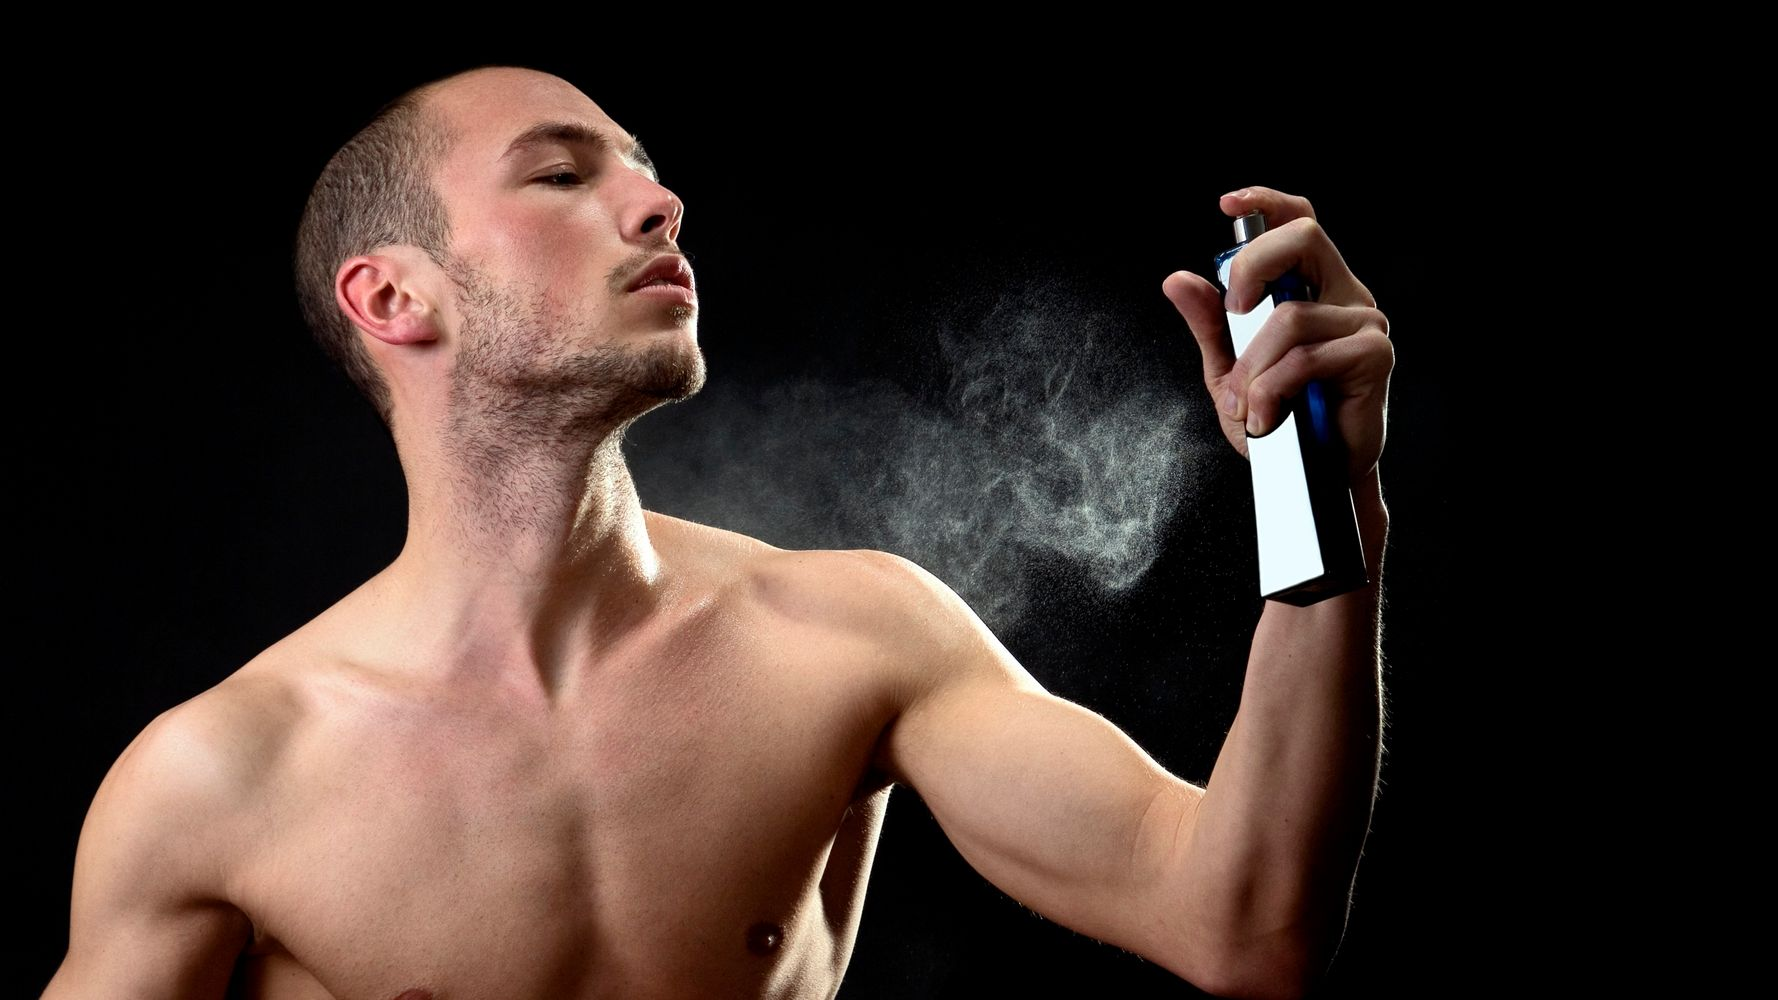 Does Axe Body Spray Smell Better Than Fancy Cologne? We